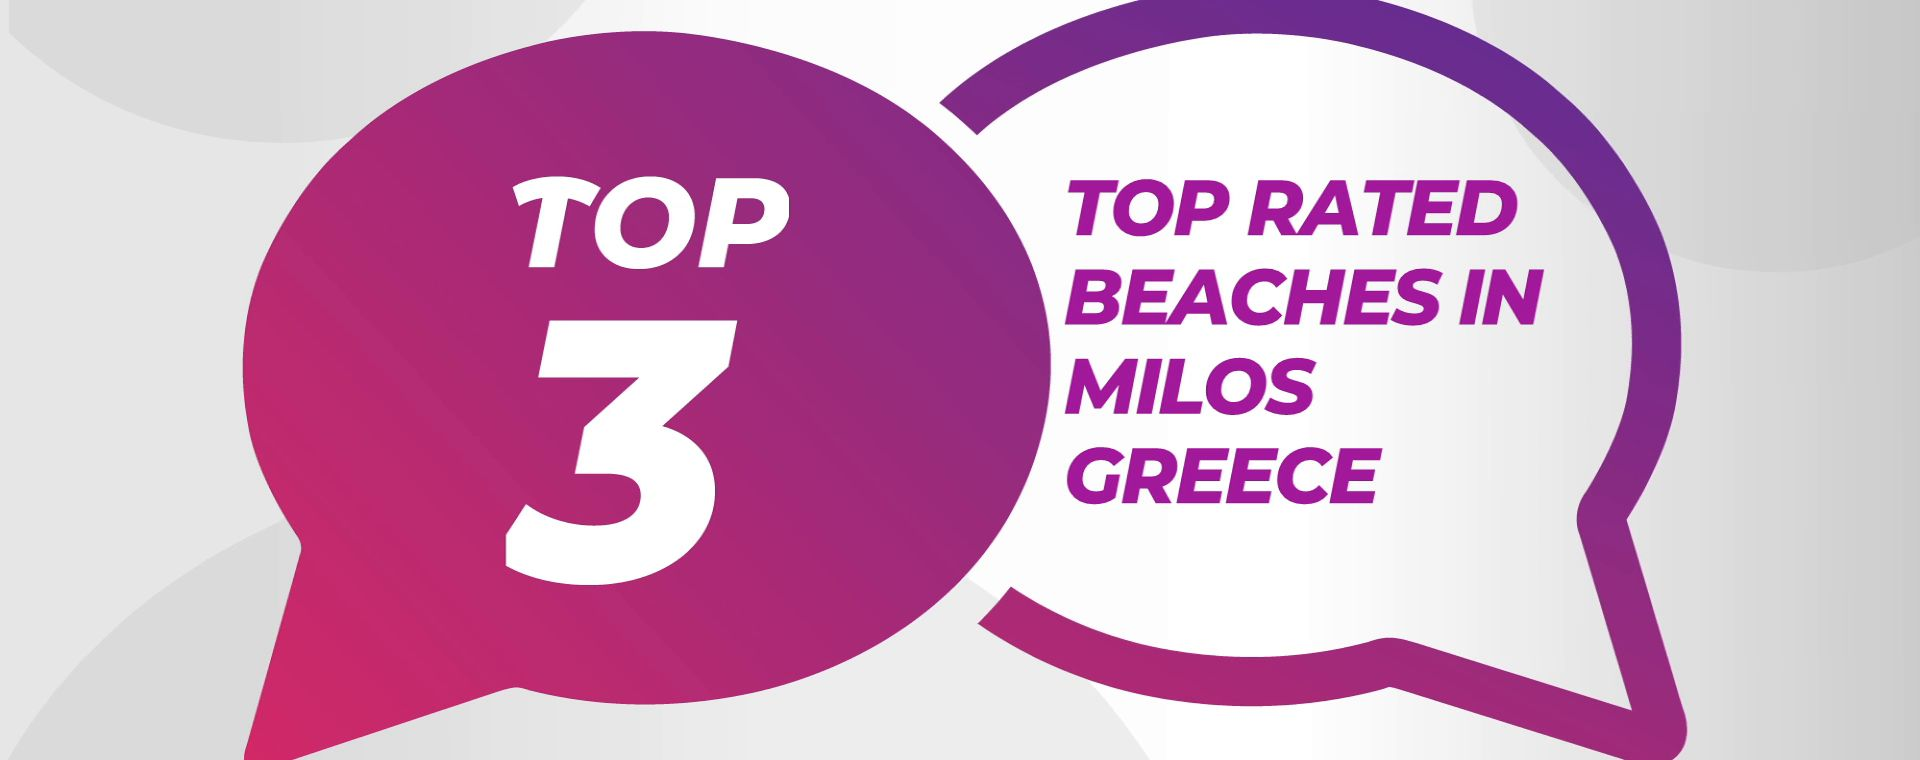 TOP RATED BEACHES IN MILOS